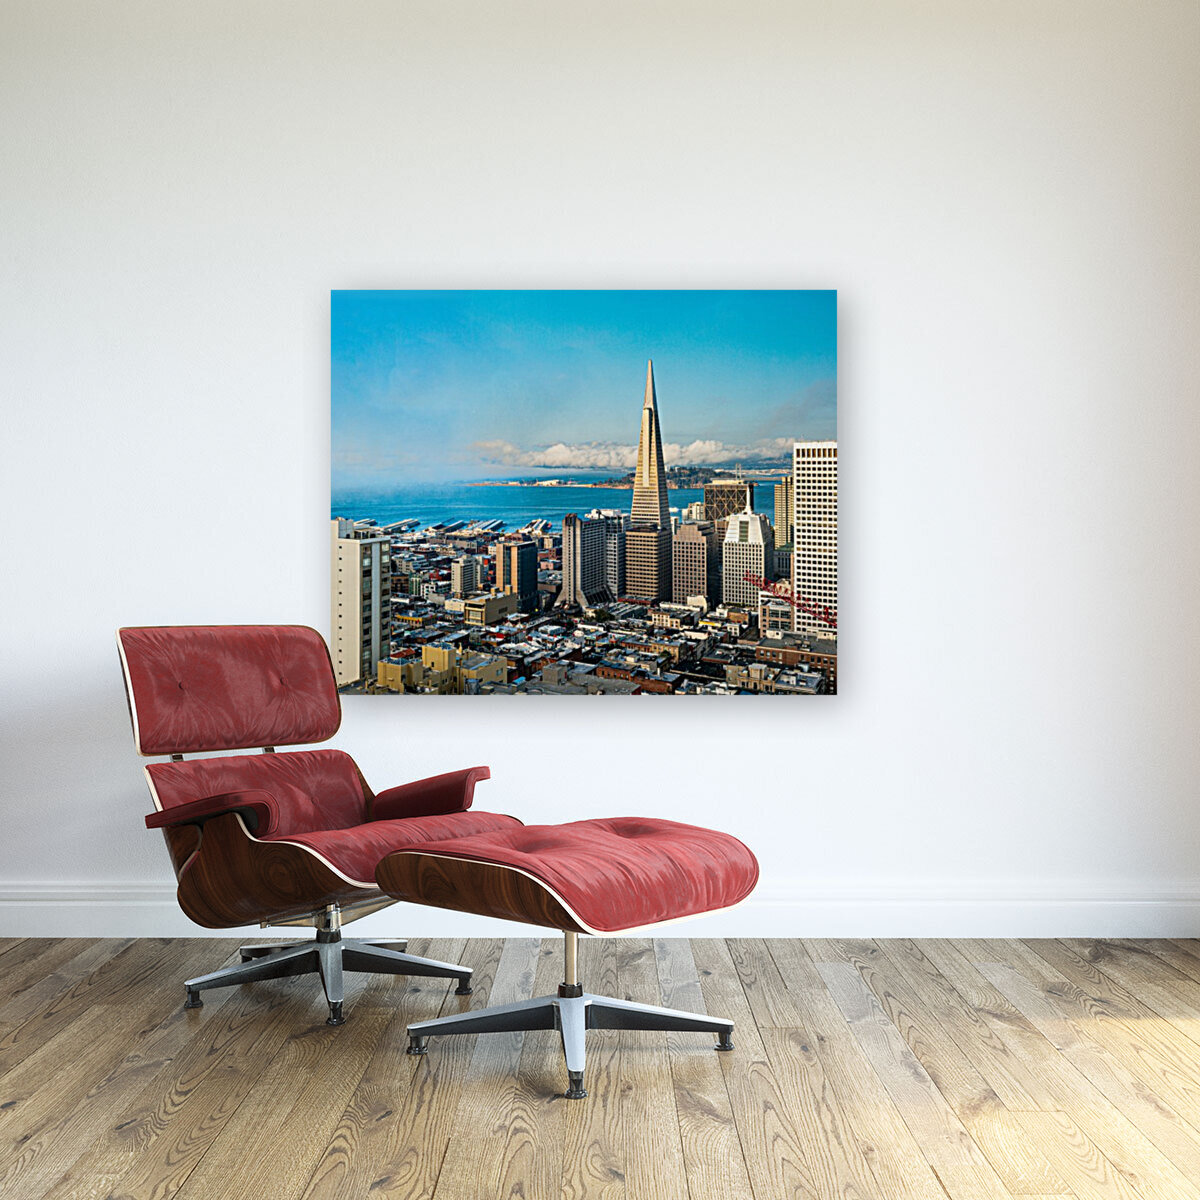 San Francisco Skyline with Floating Frame